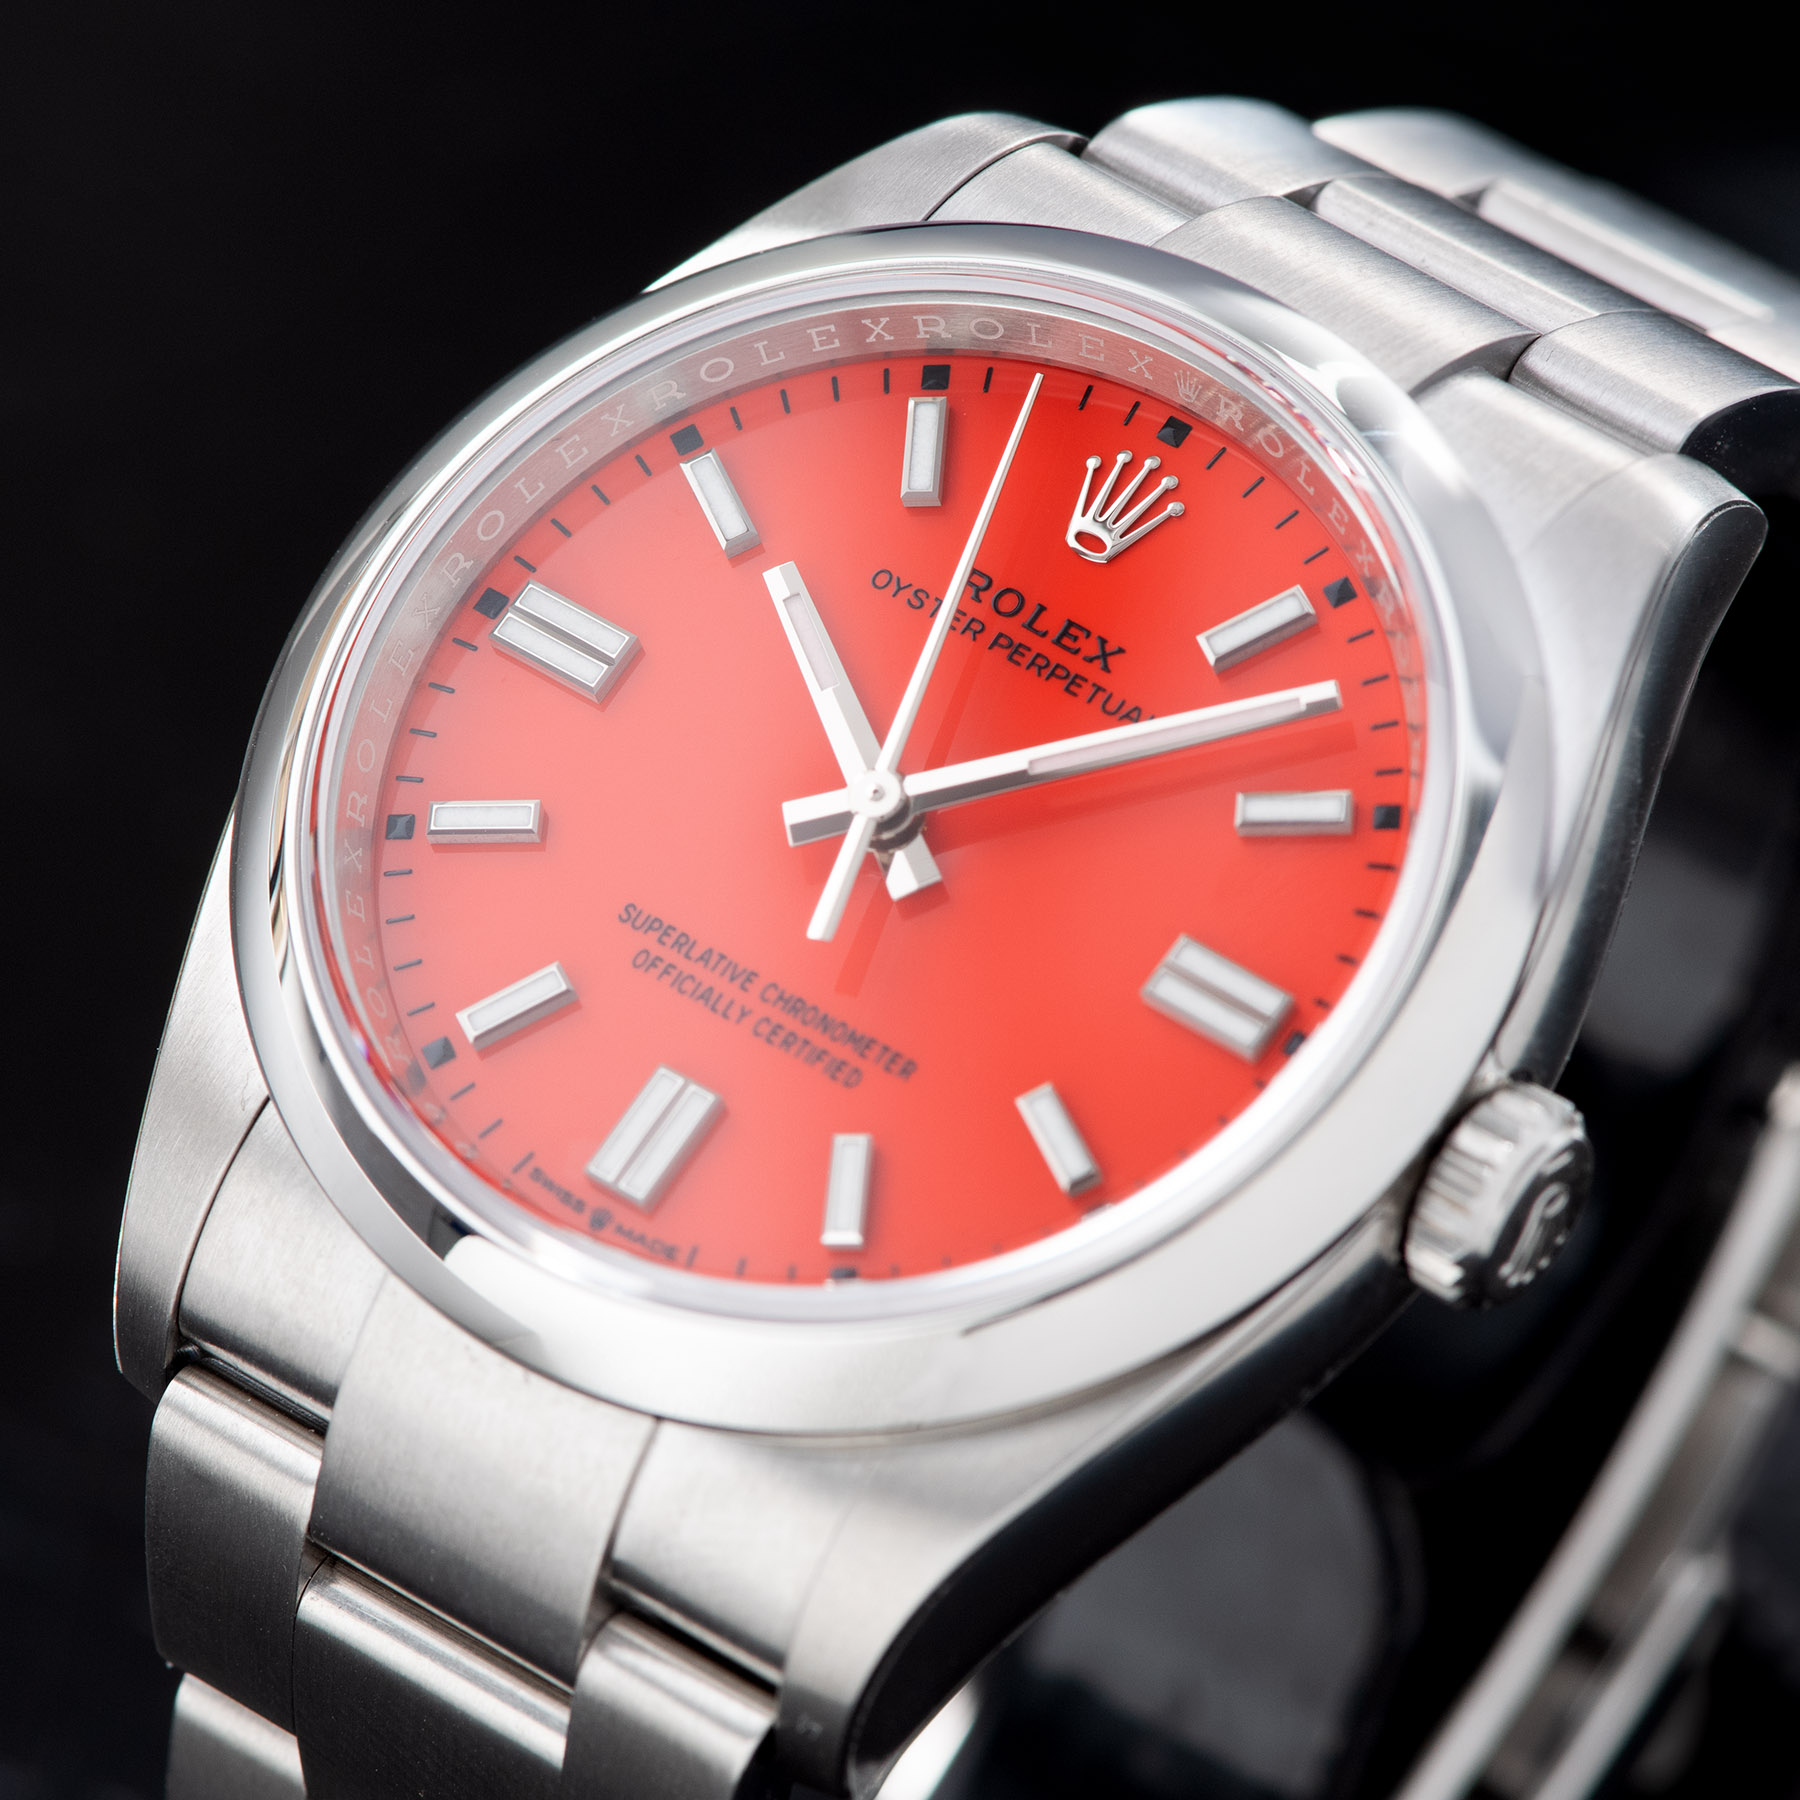 Rolex Oyster Perpetual 36mm Oystersteel 2020 Coral Red